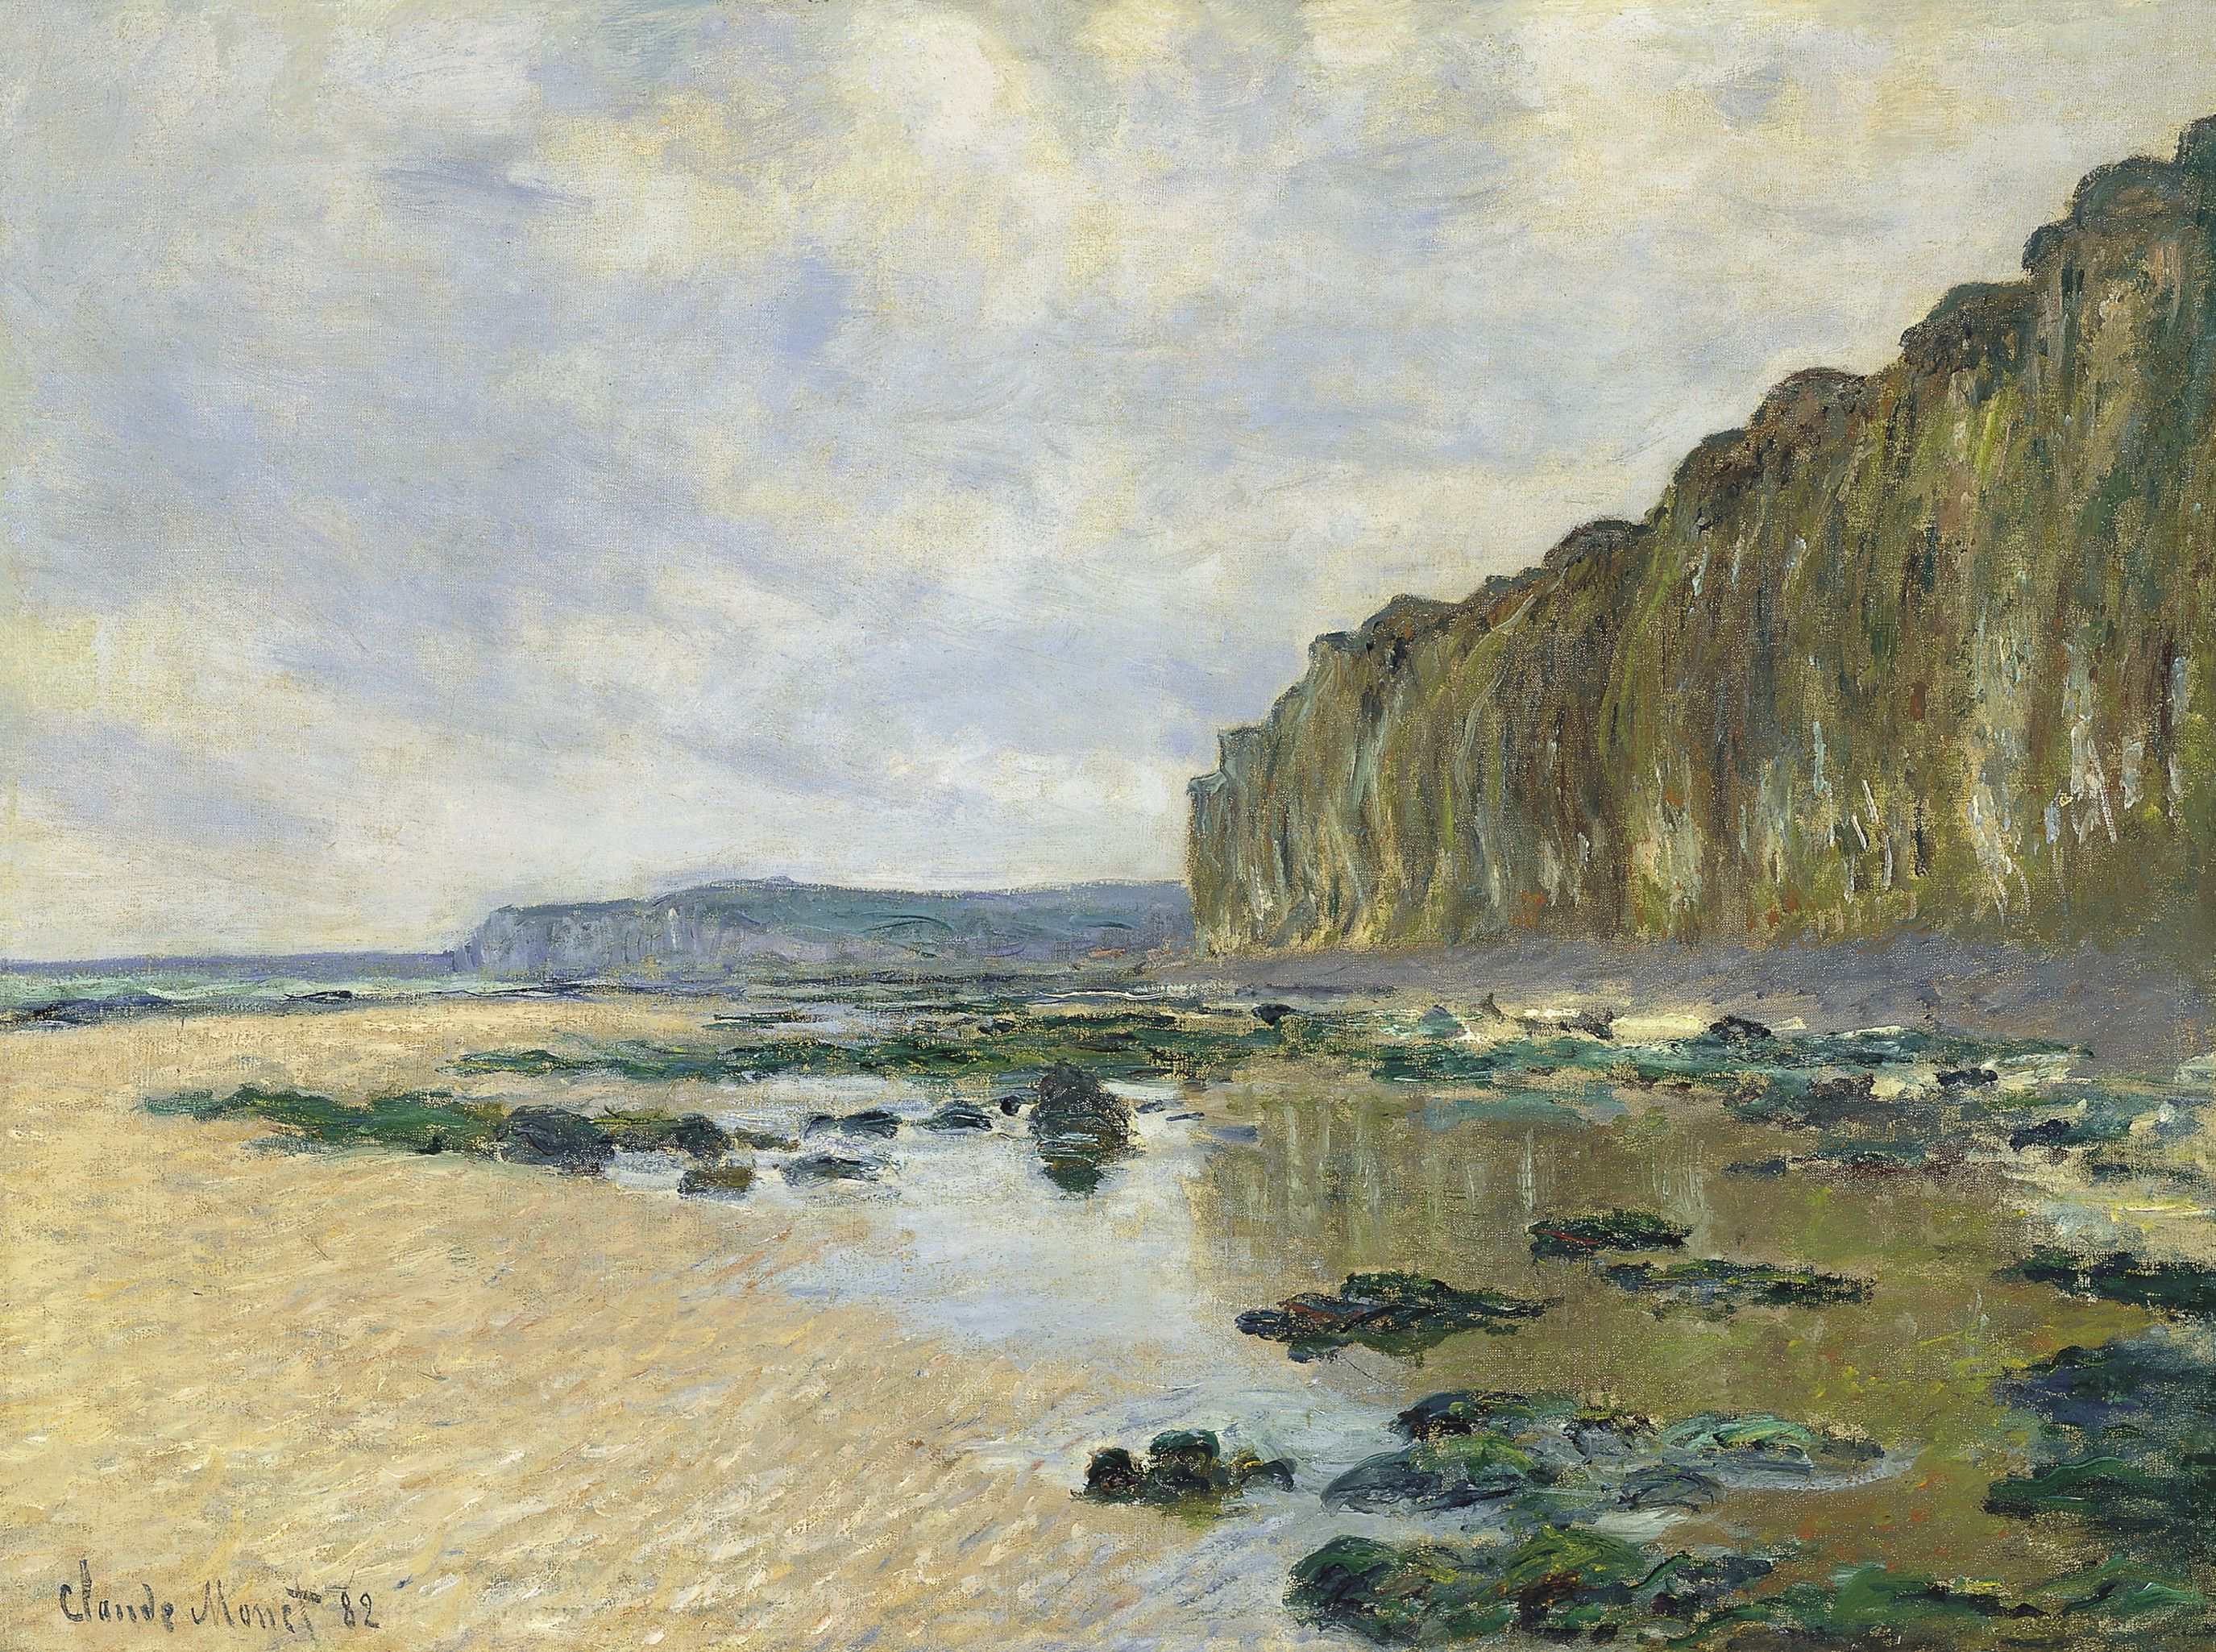 Pin by Carrie Ackley on SS2020   Monet paintings, Claude monet paintings,  Artist monet